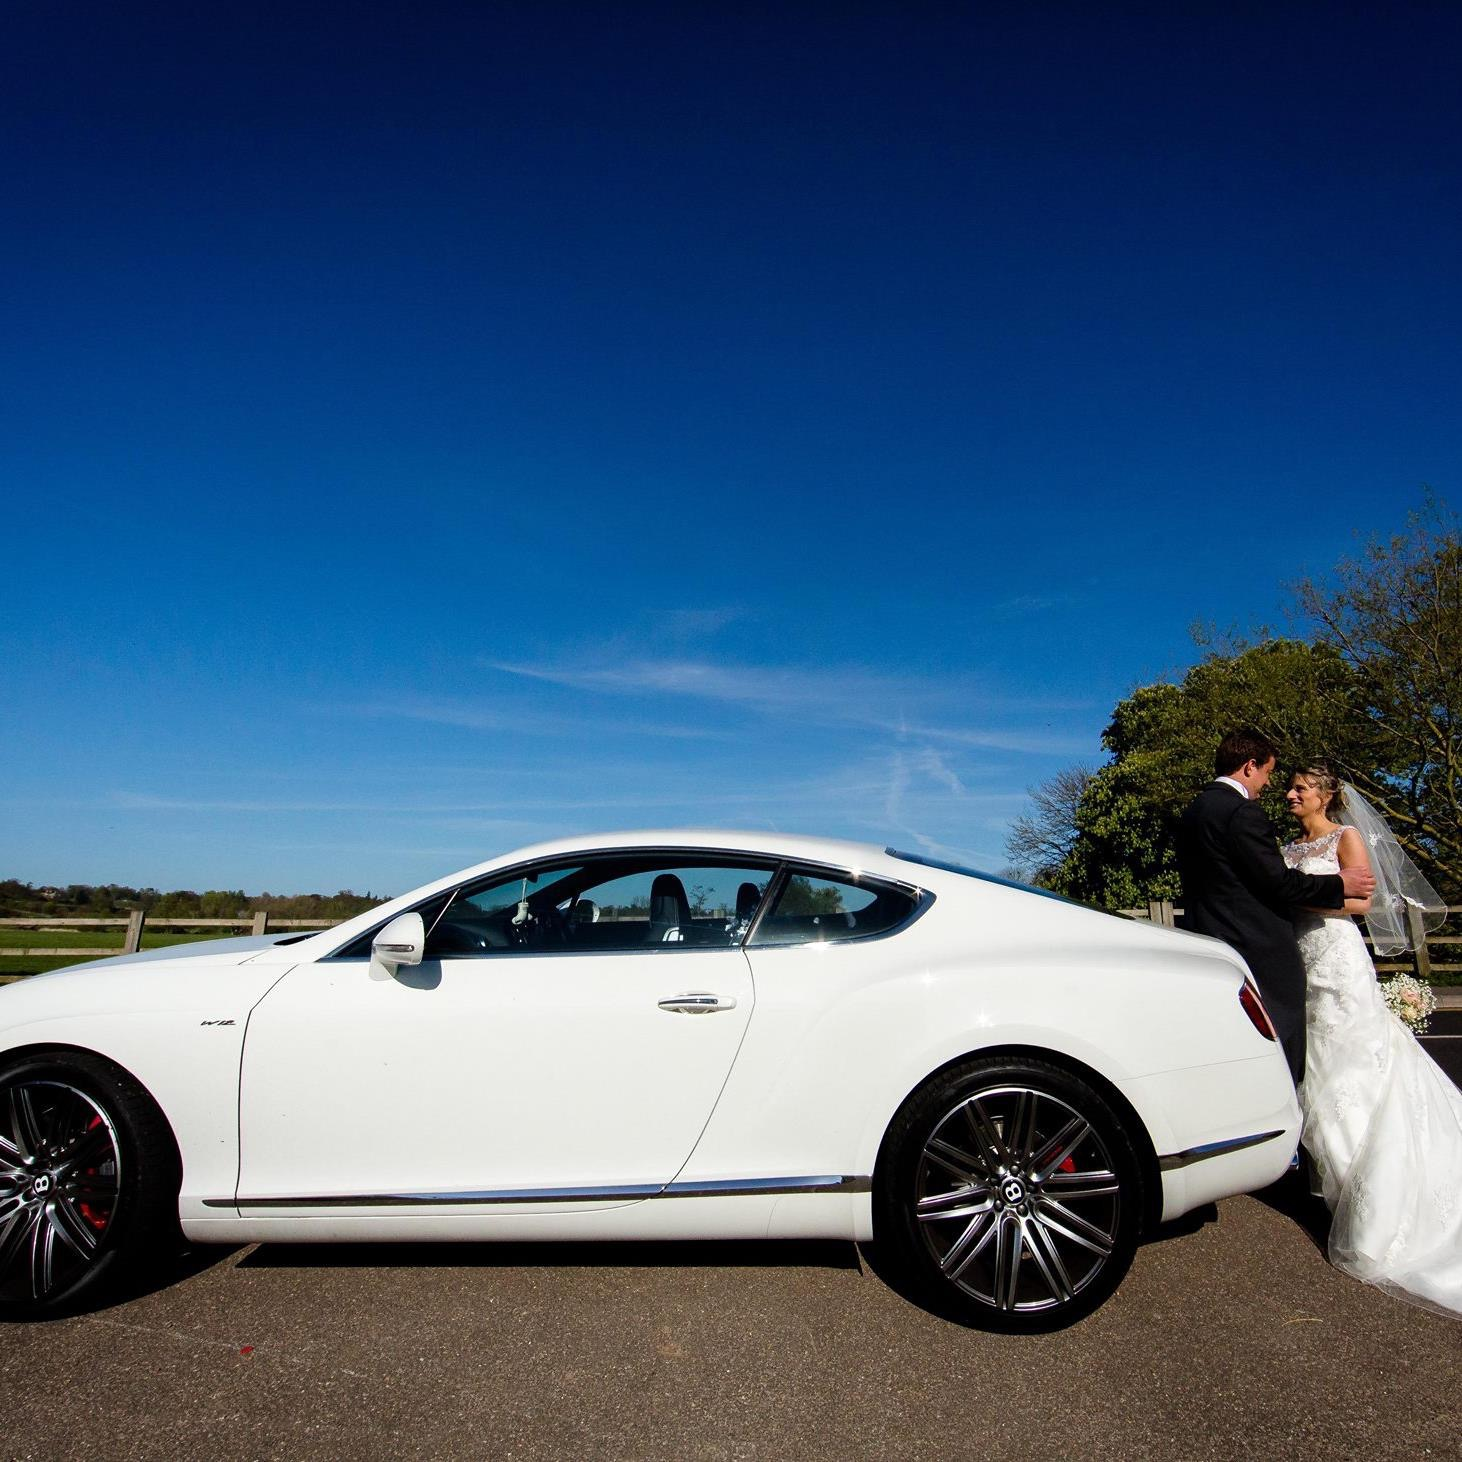 Jacqui Treated Her Groom To The Stunning Bentley GT Speed